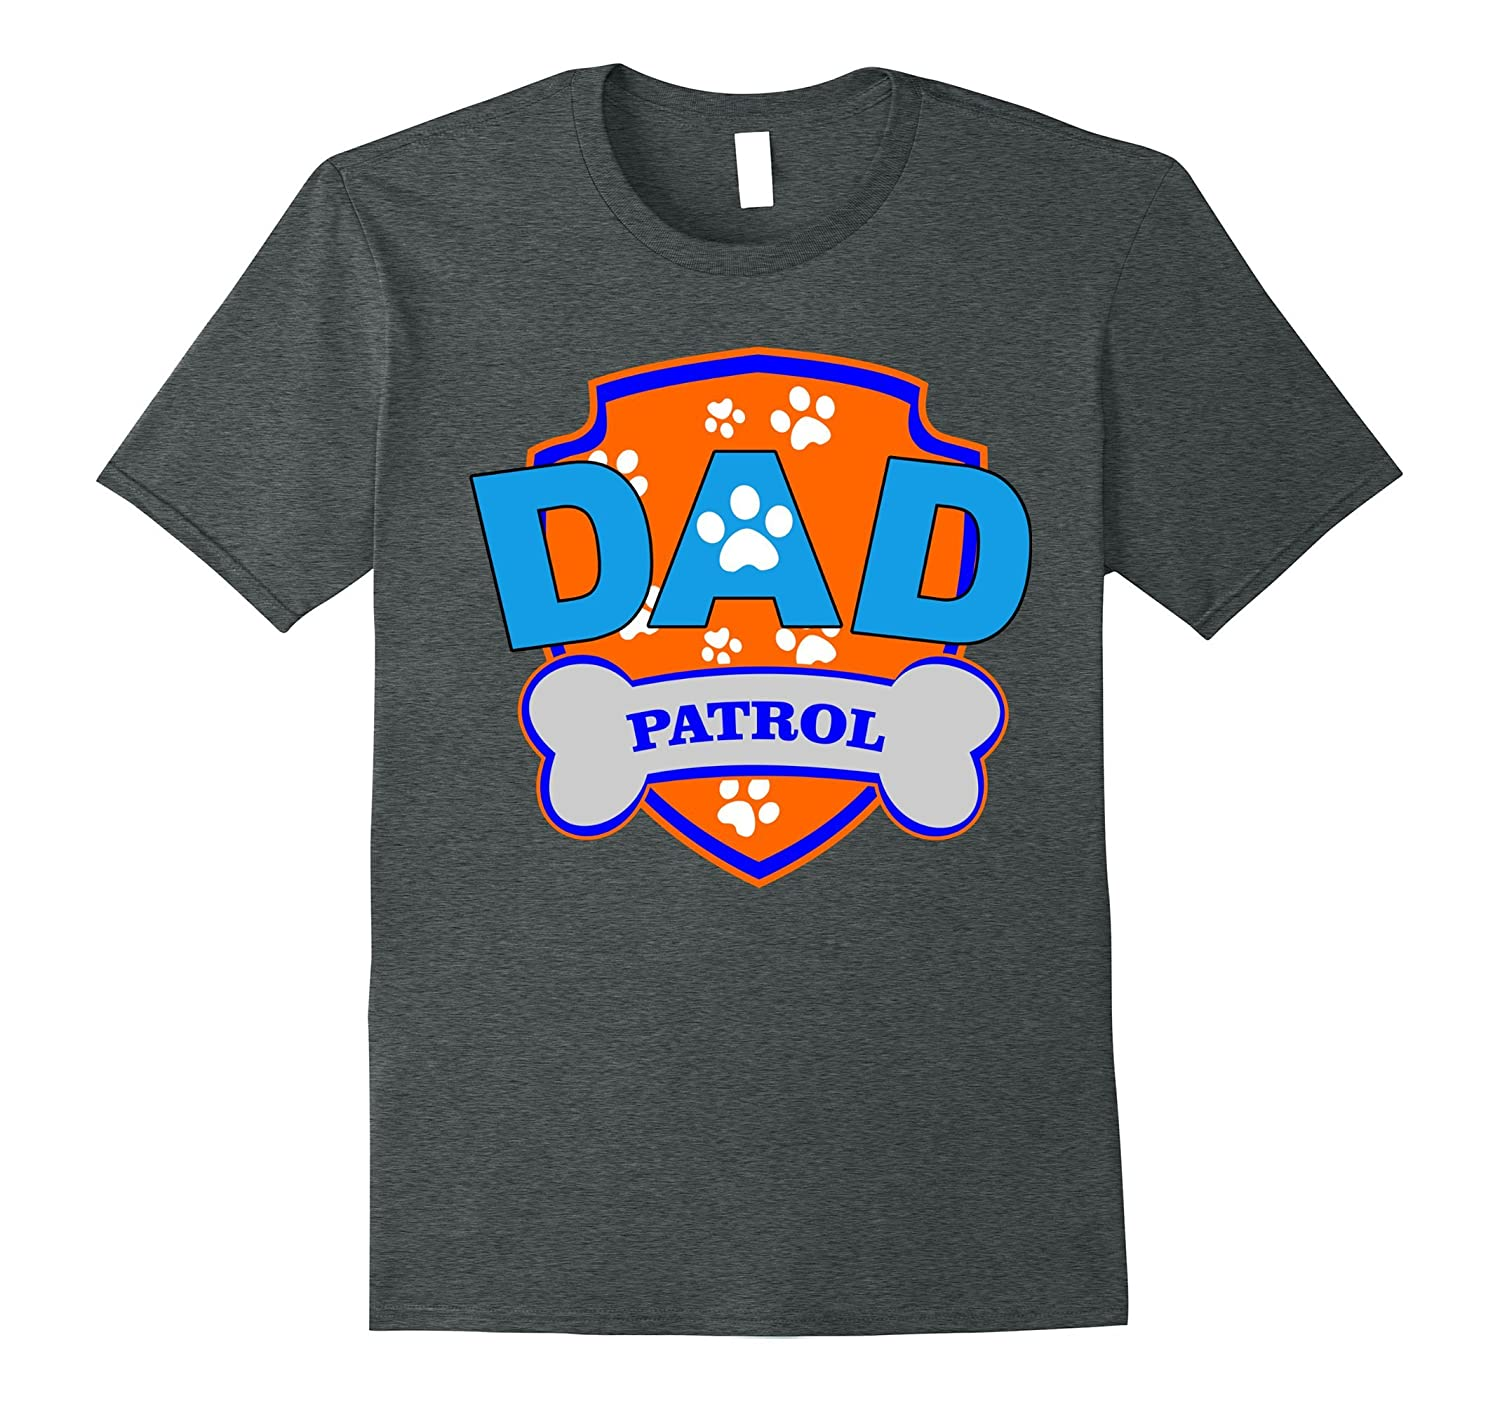 83b0919e5 Mens Funny Dad Patrol T-Shirt Awesome Cool Gift Tee-RT – Rateeshirt